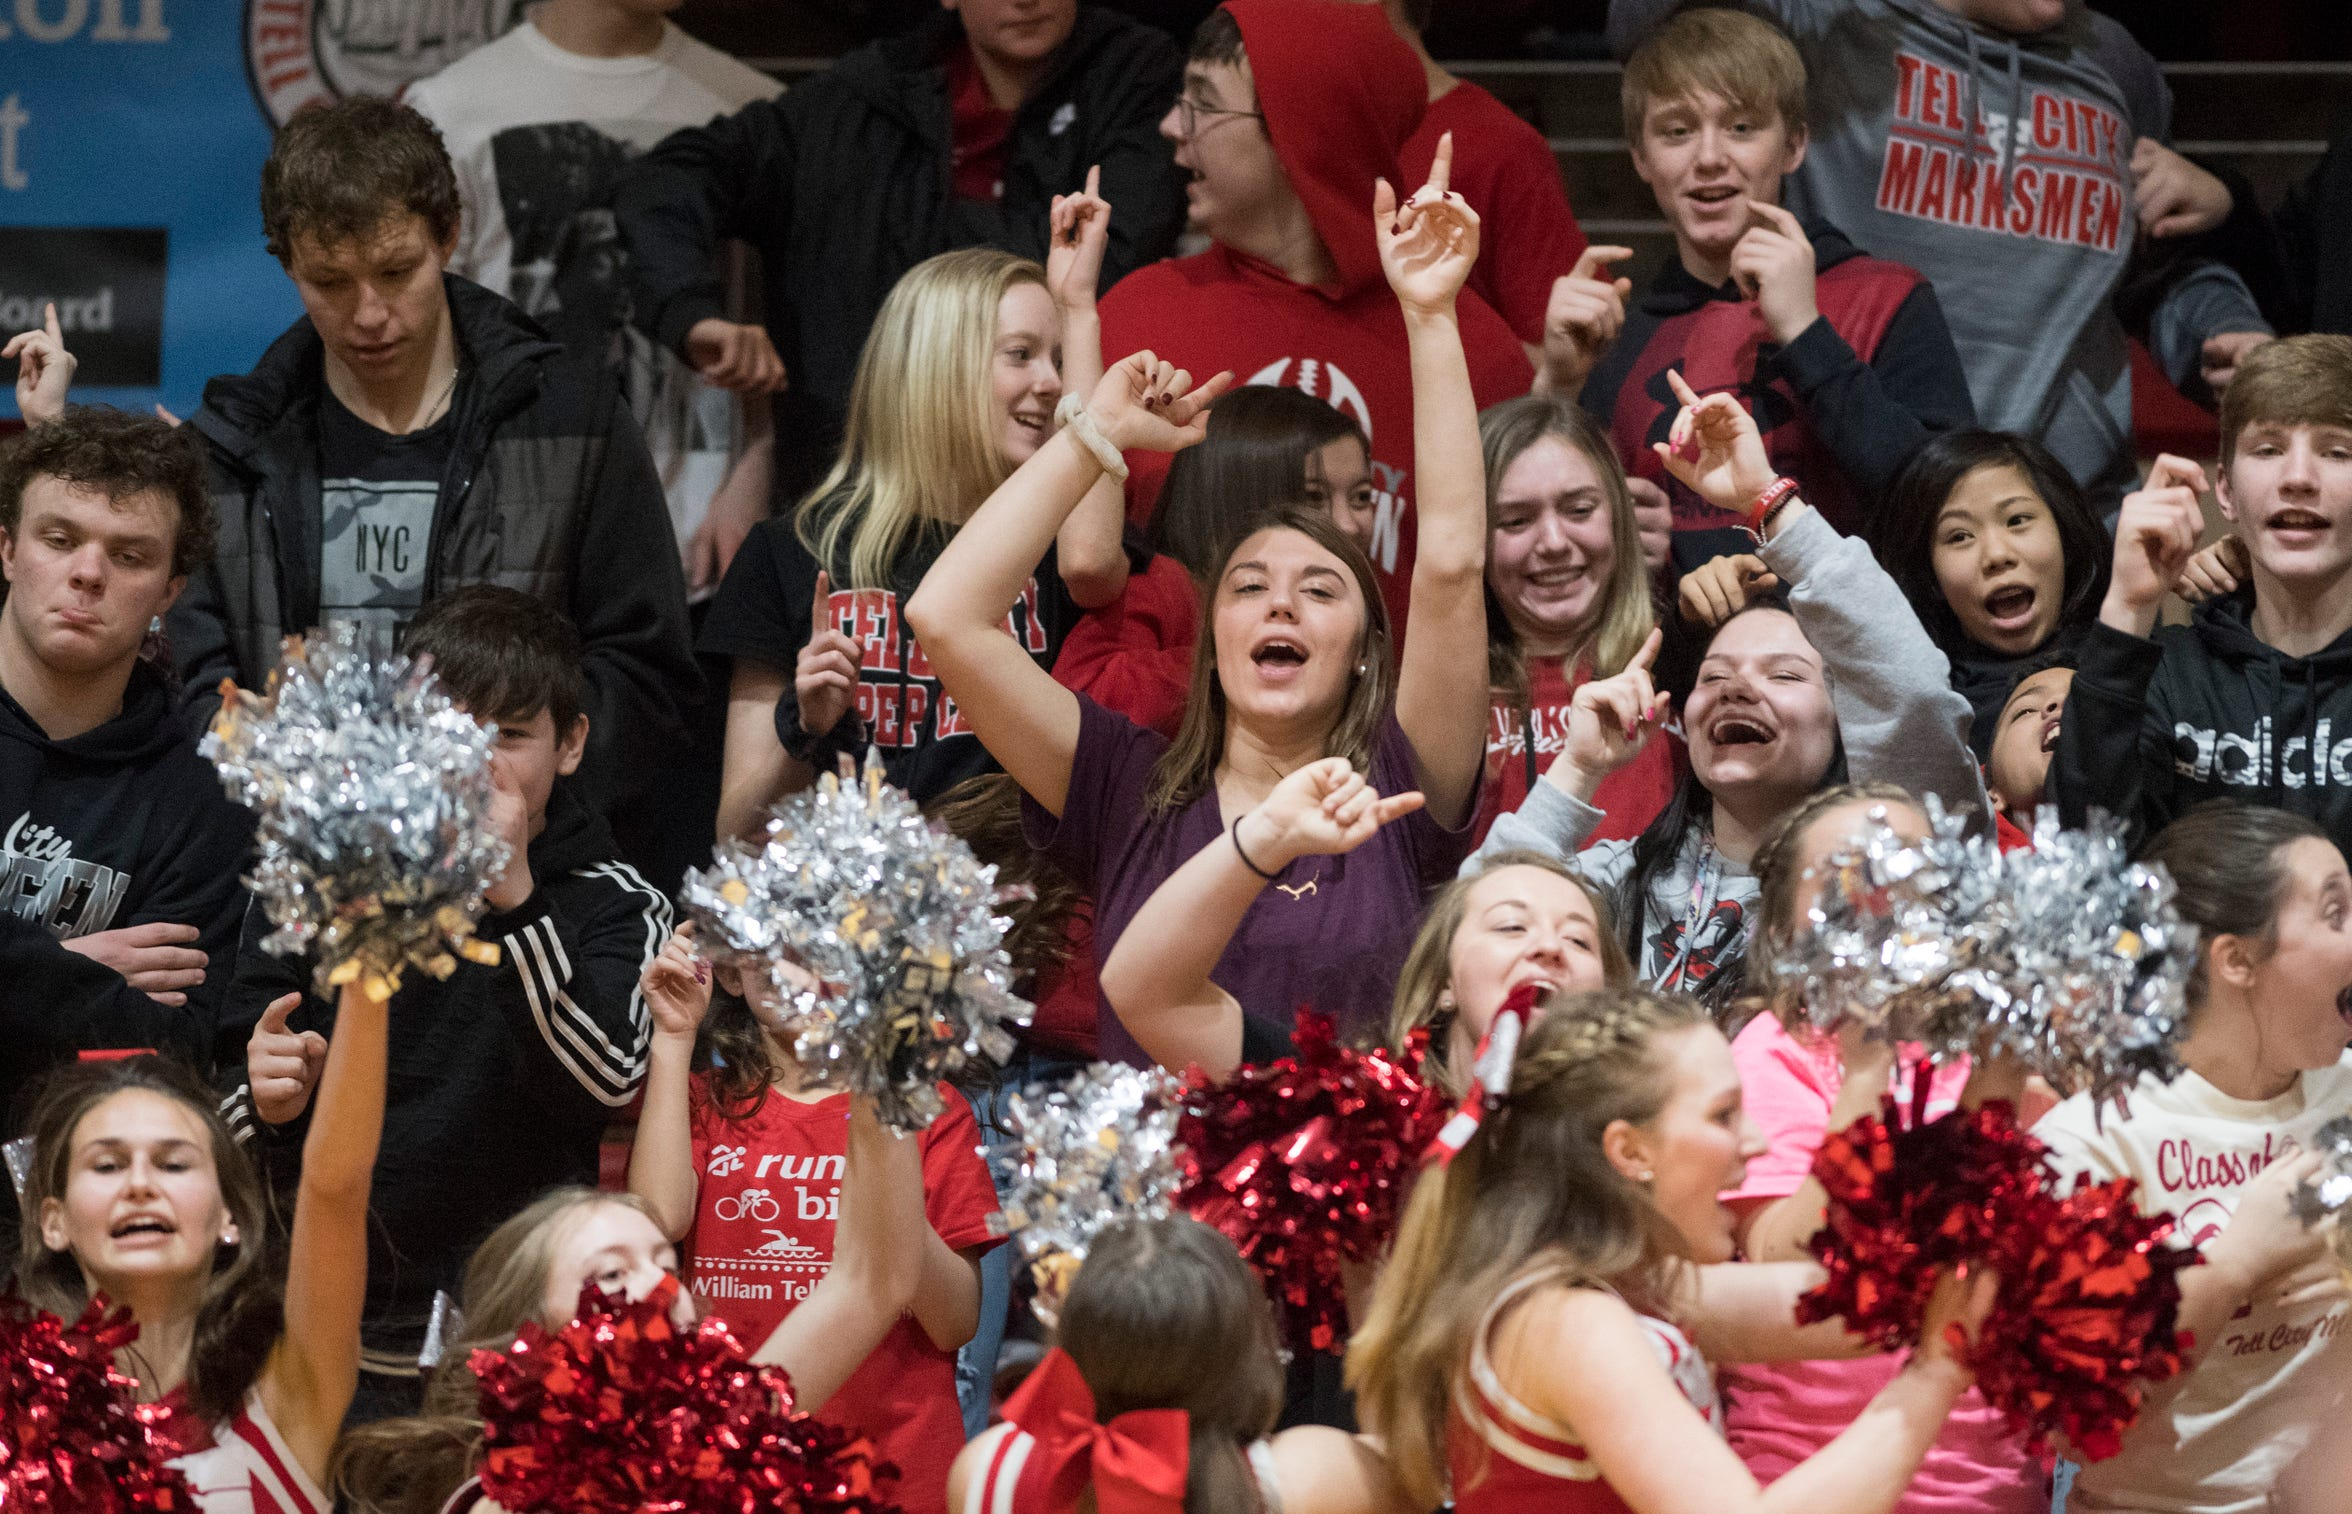 The Tell City student section erupts after the Marksmen sink a basket during the Gibson Southern vs Tell City game at the Bryan Taylor Sports Arena in Tell City, Ind. Thursday, Feb. 7, 2019. Tell City won in double overtime 51-49.